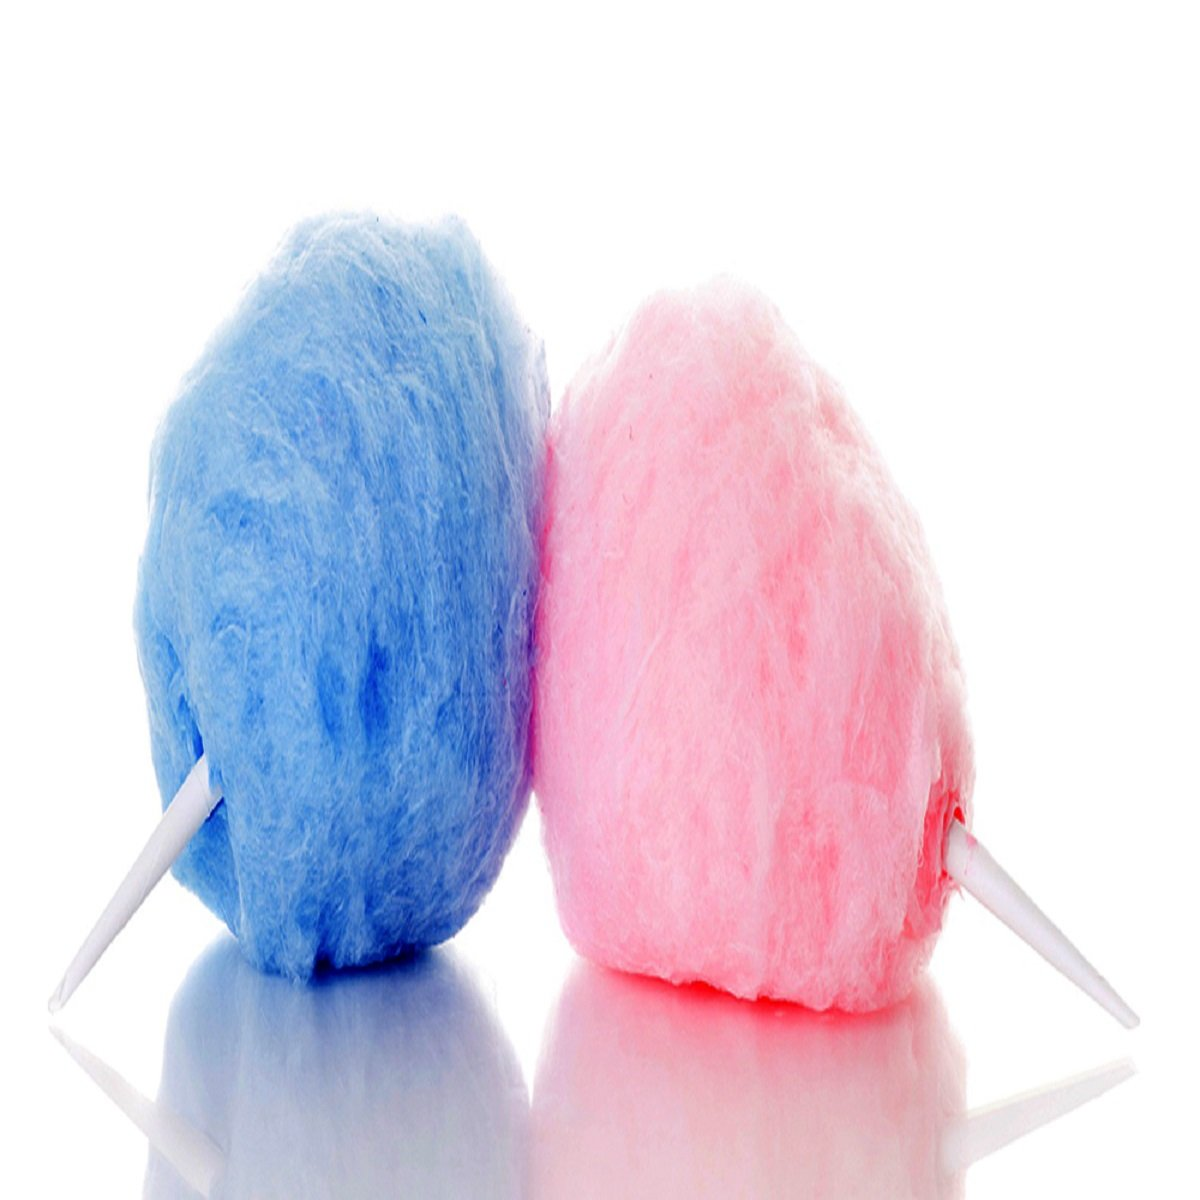 Cotton Candy Fragrance Oil -2 LB - for Candle & SOAP Making by VIRGINIA CANDLE SUPPLY - Free S&H in USA